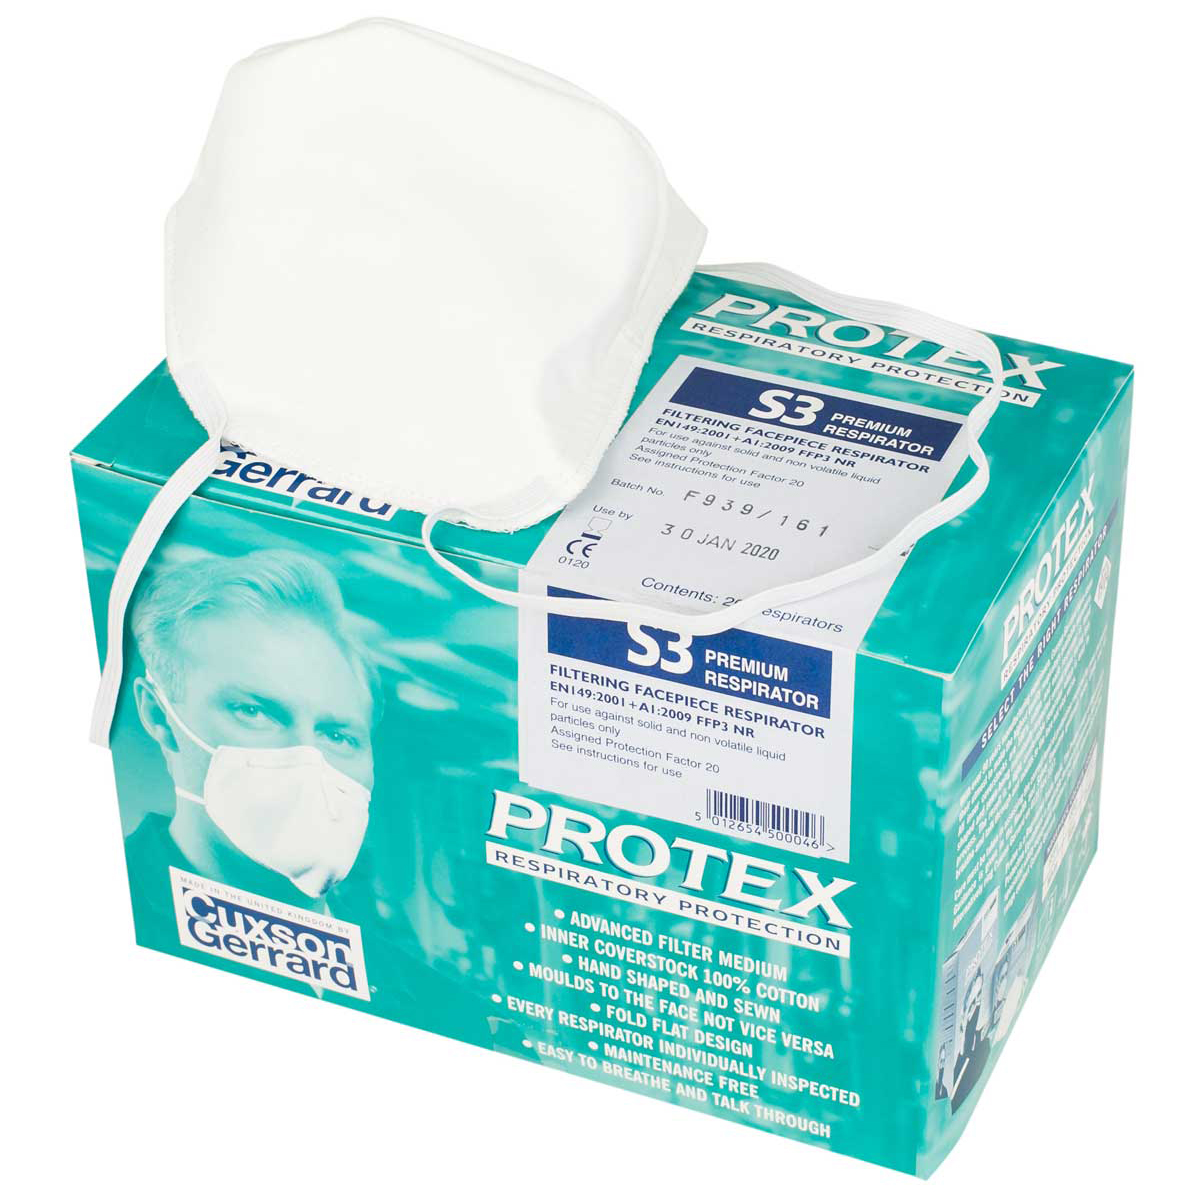 Pack of 20 Protex S3 Respiratory Mask